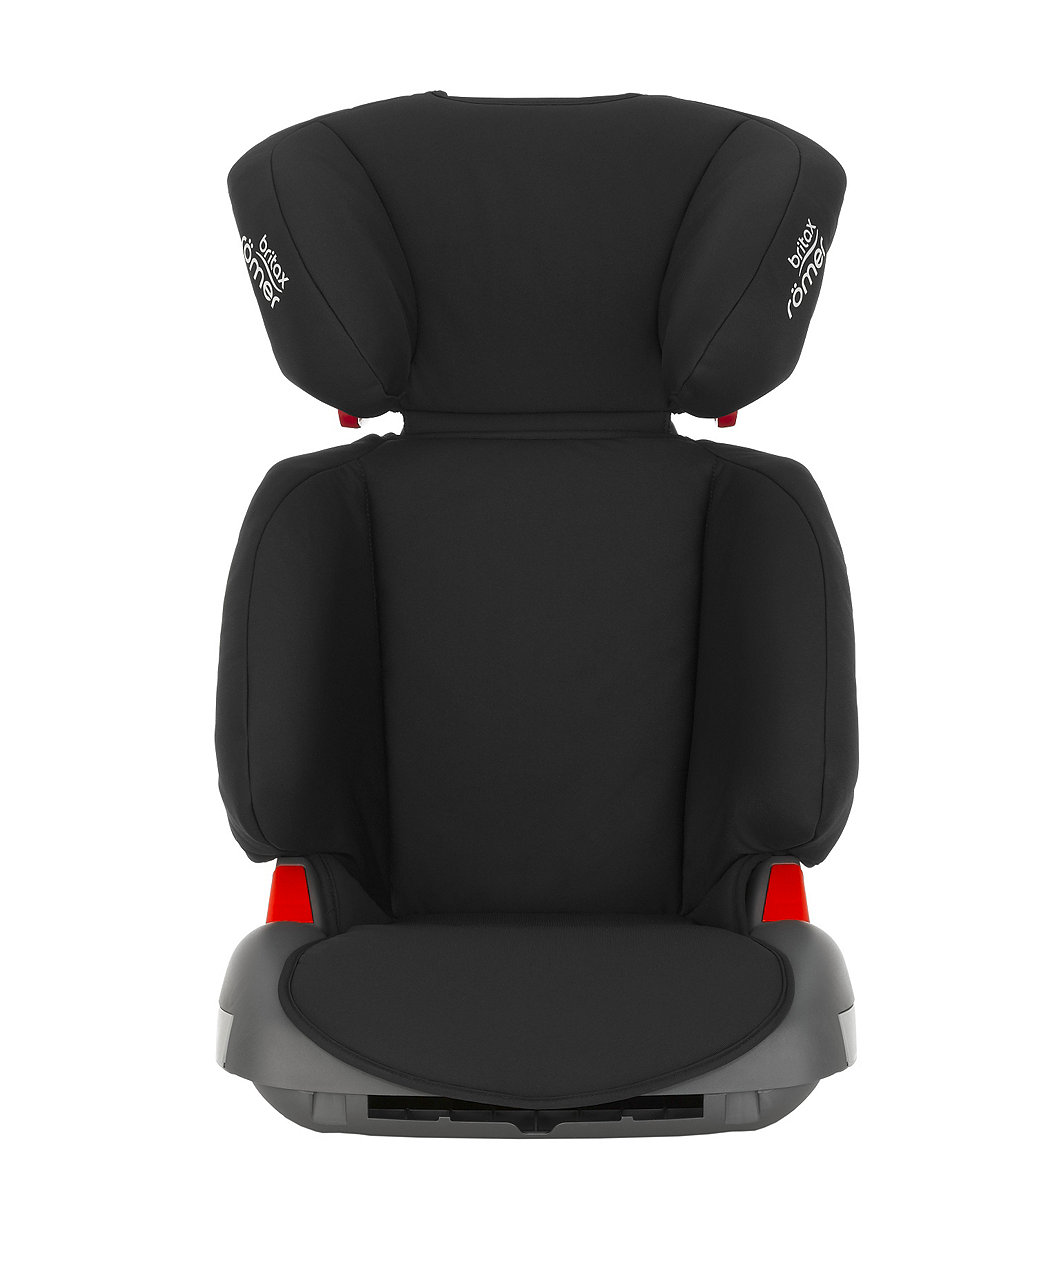 britax romer adventure high back booster car seat without. Black Bedroom Furniture Sets. Home Design Ideas